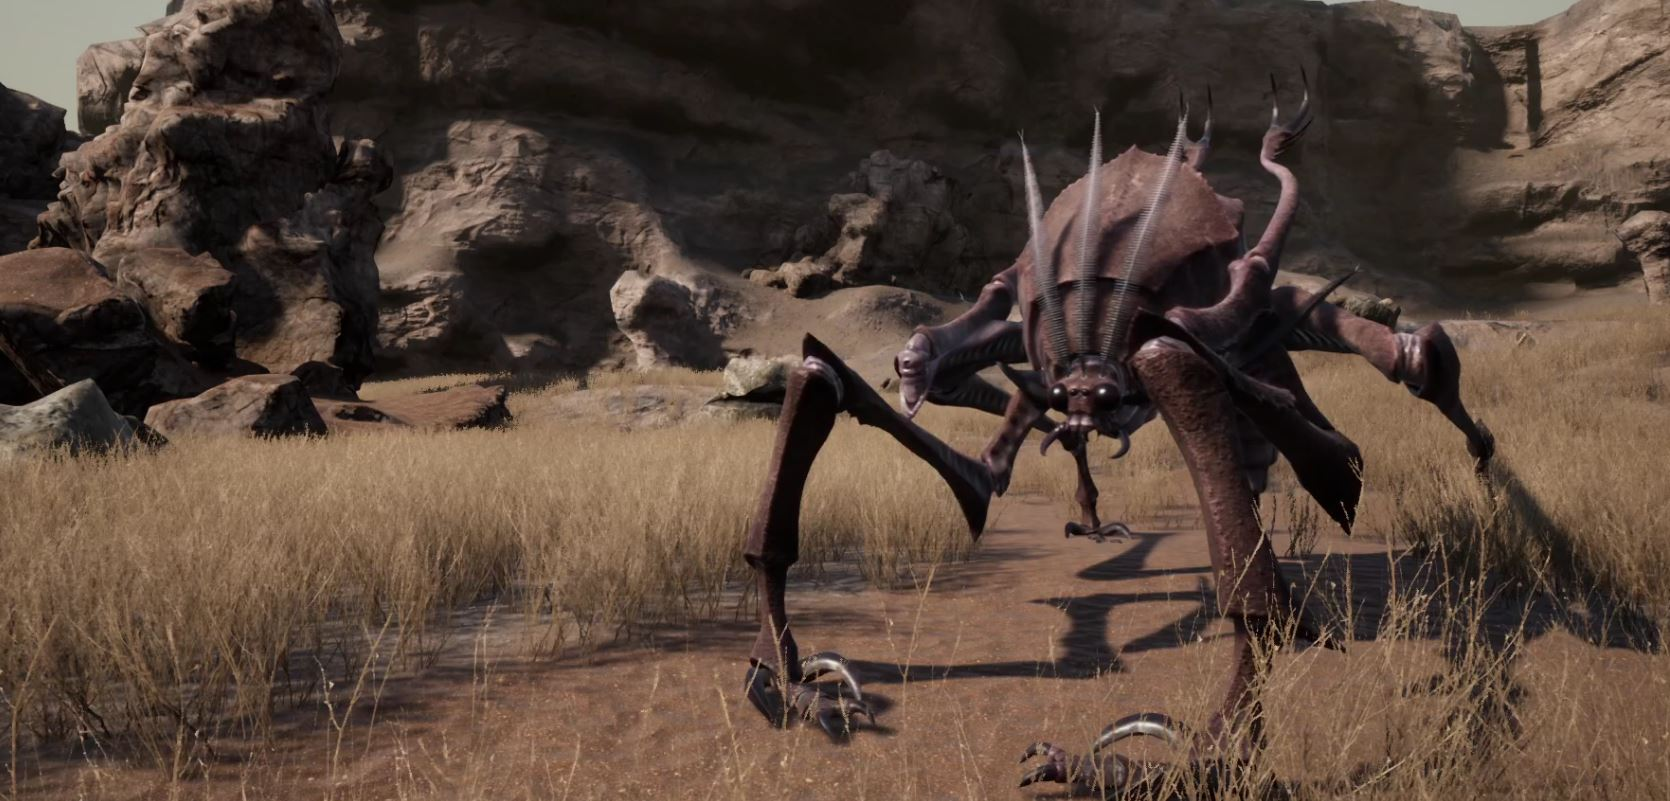 A large bug-like enemy shown in Kenshi 2